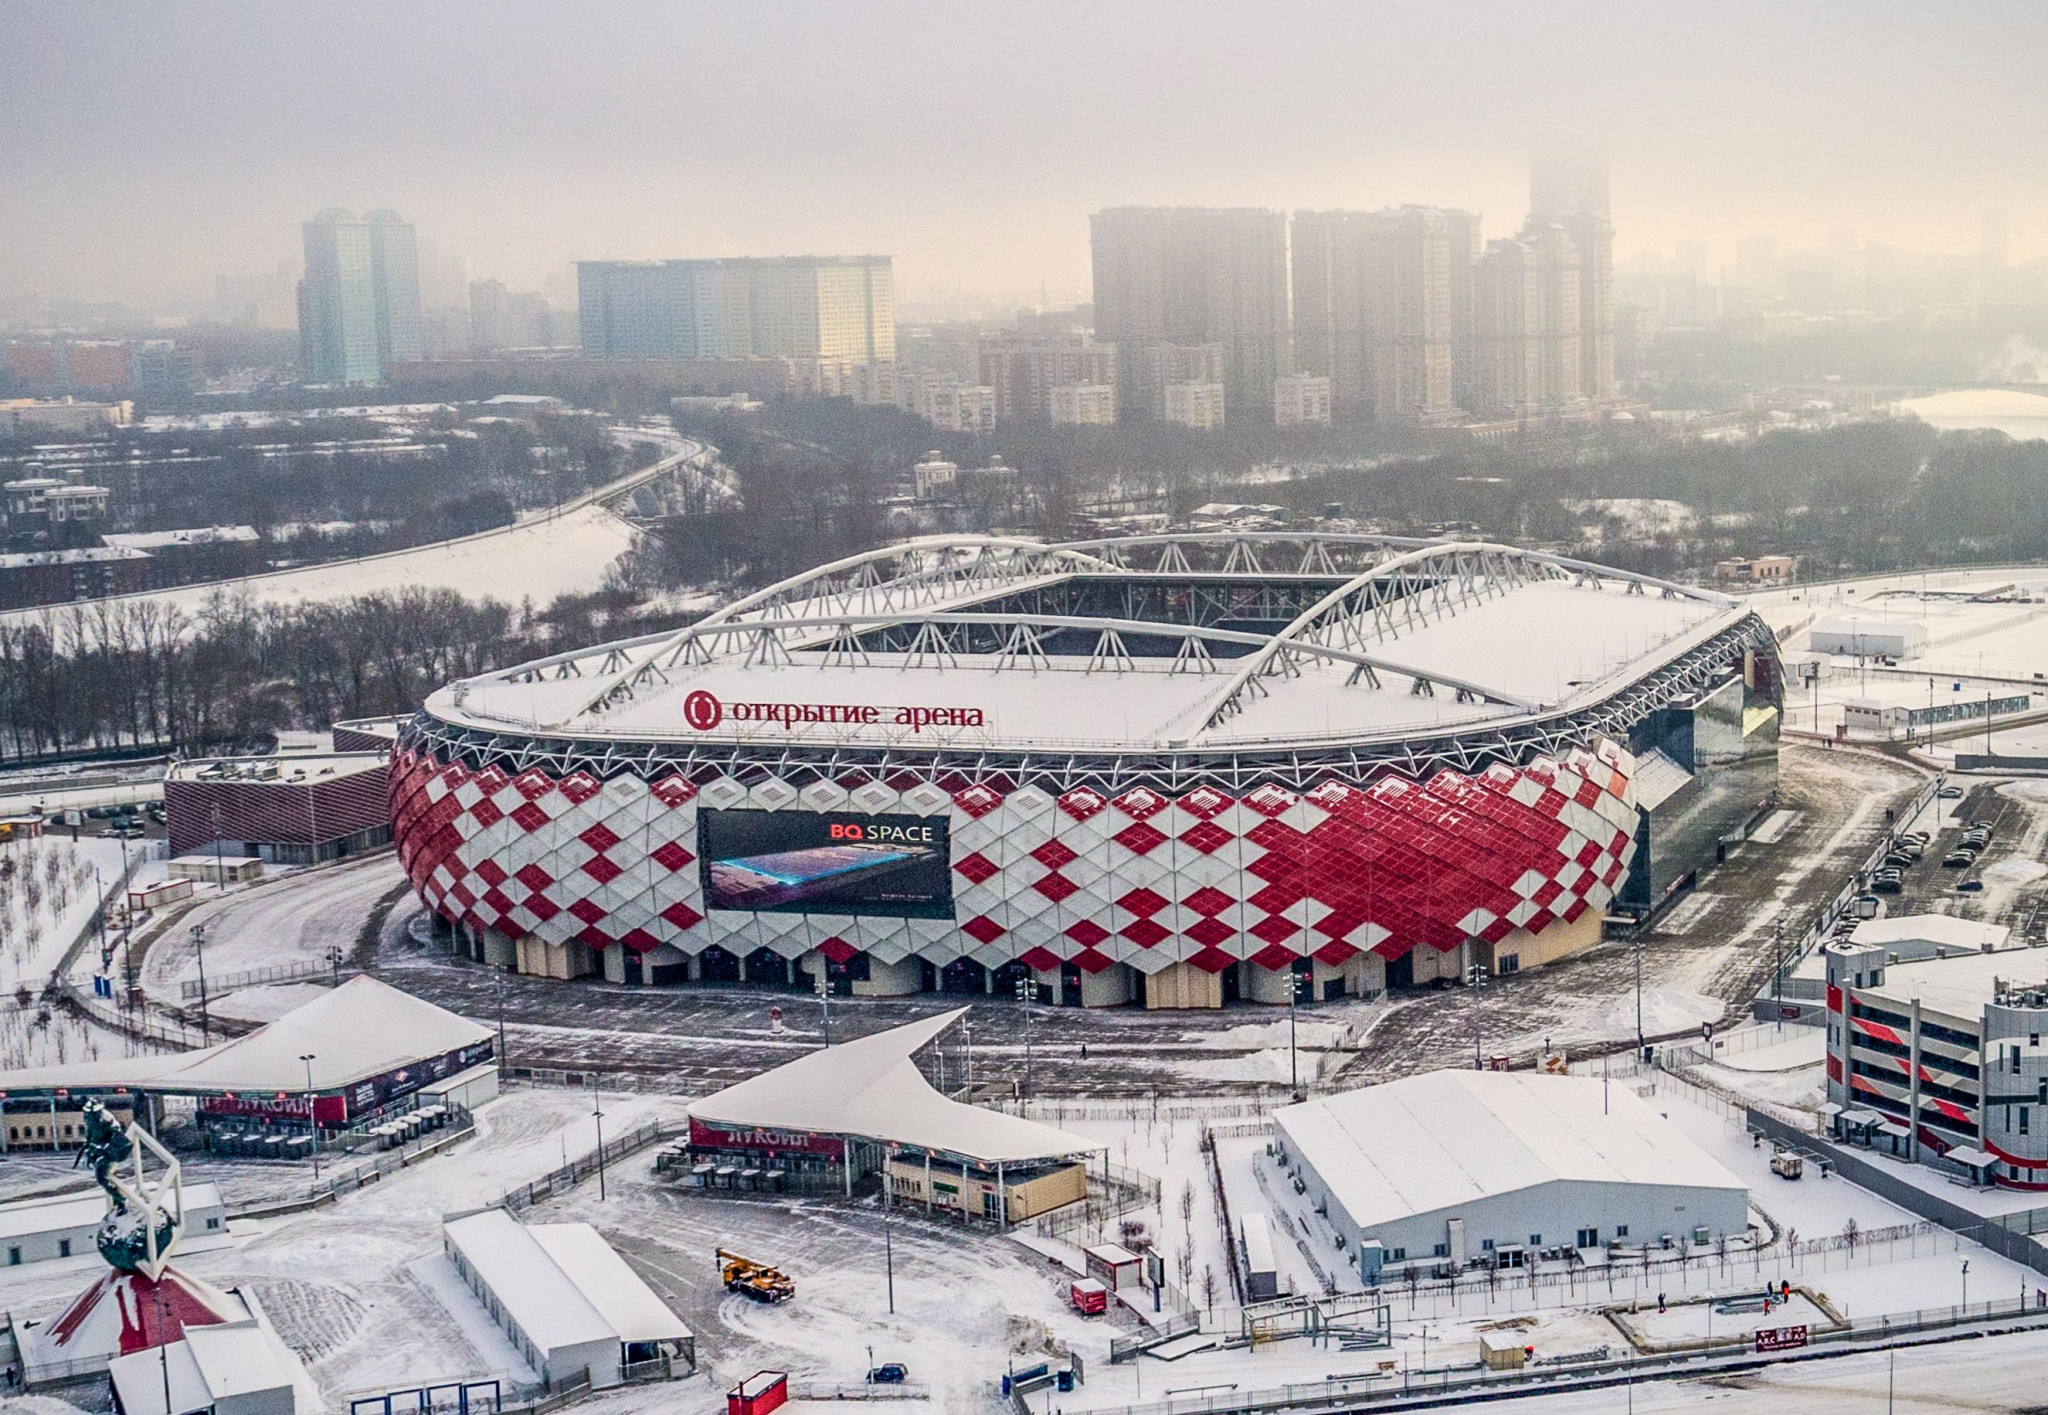 Russia is preparing for this year's World Cup, which will open on June 14 ©Getty Images